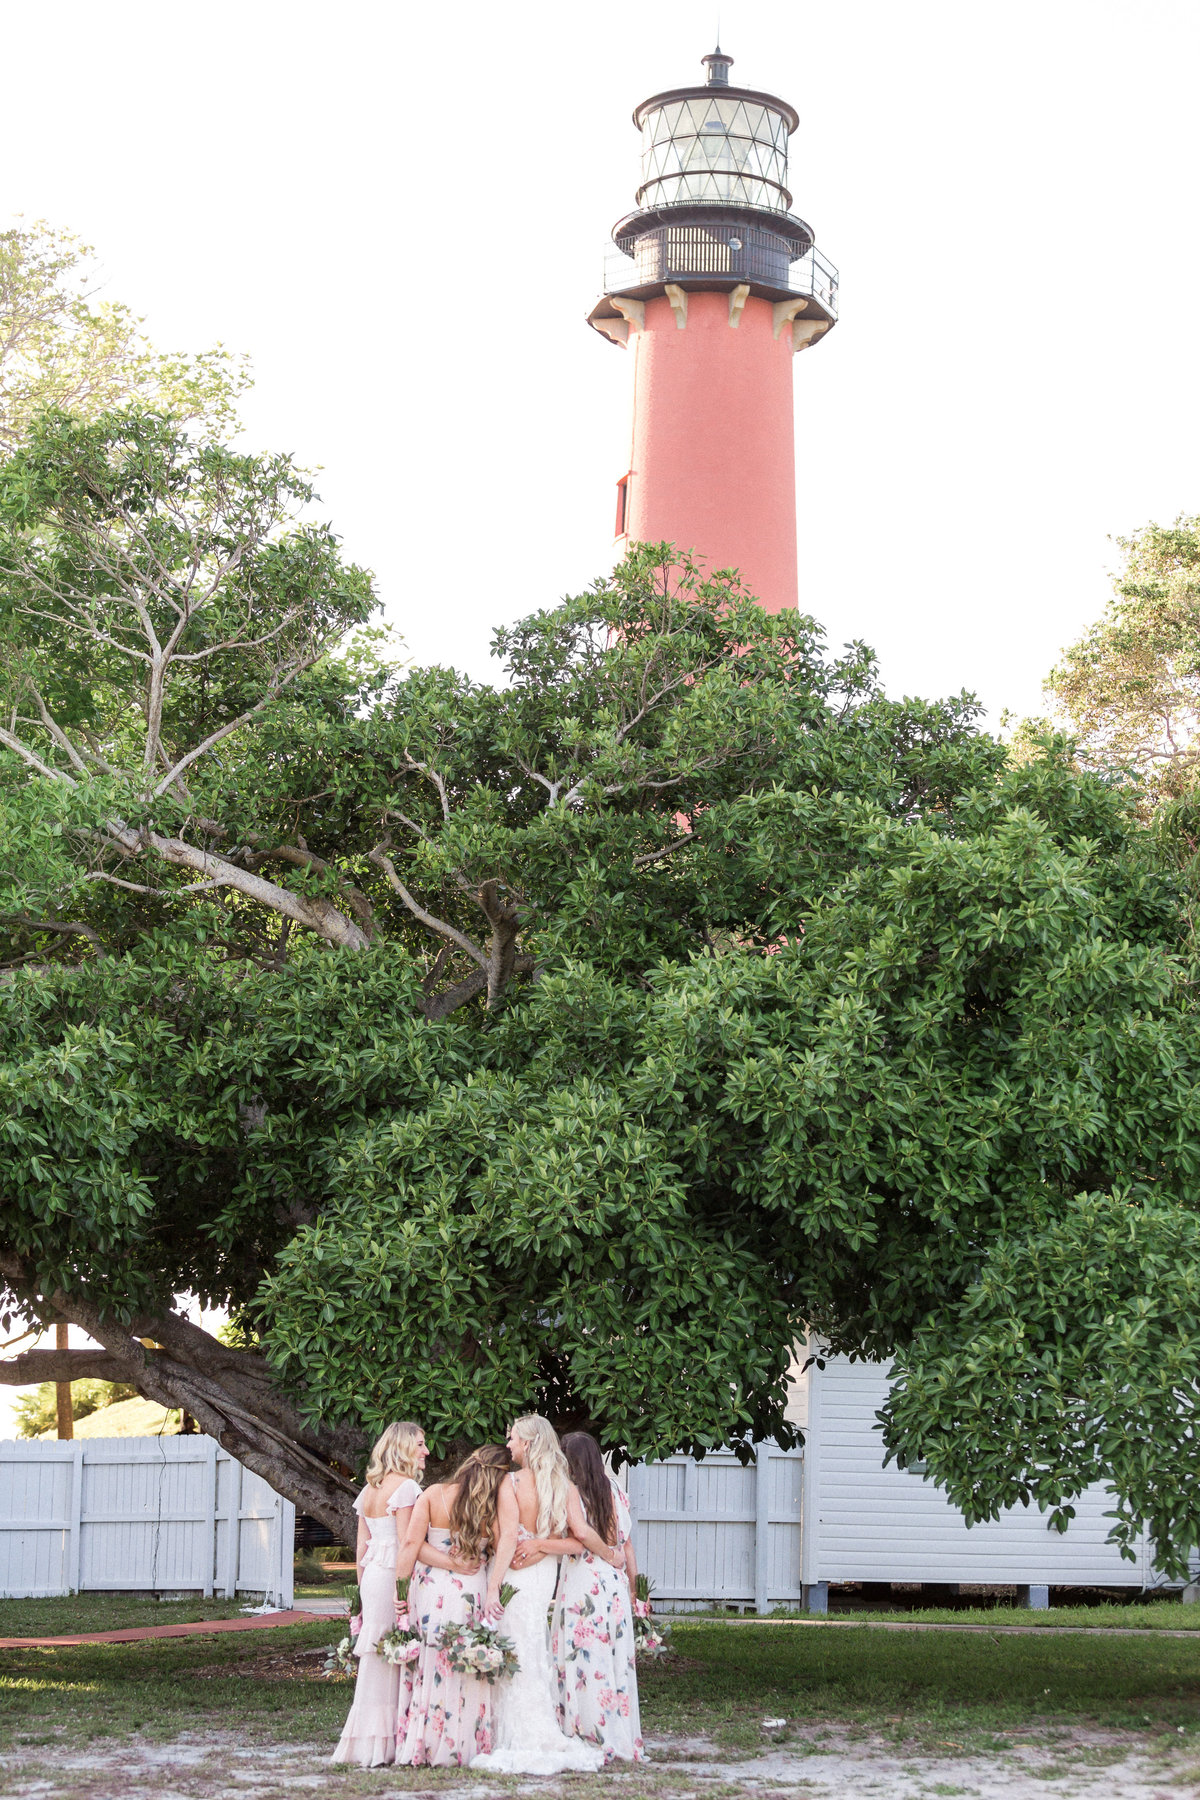 jupiterlighthouseceremoney2-FloridaEstateWeddingPhotographer-TessaMaxinePhotography